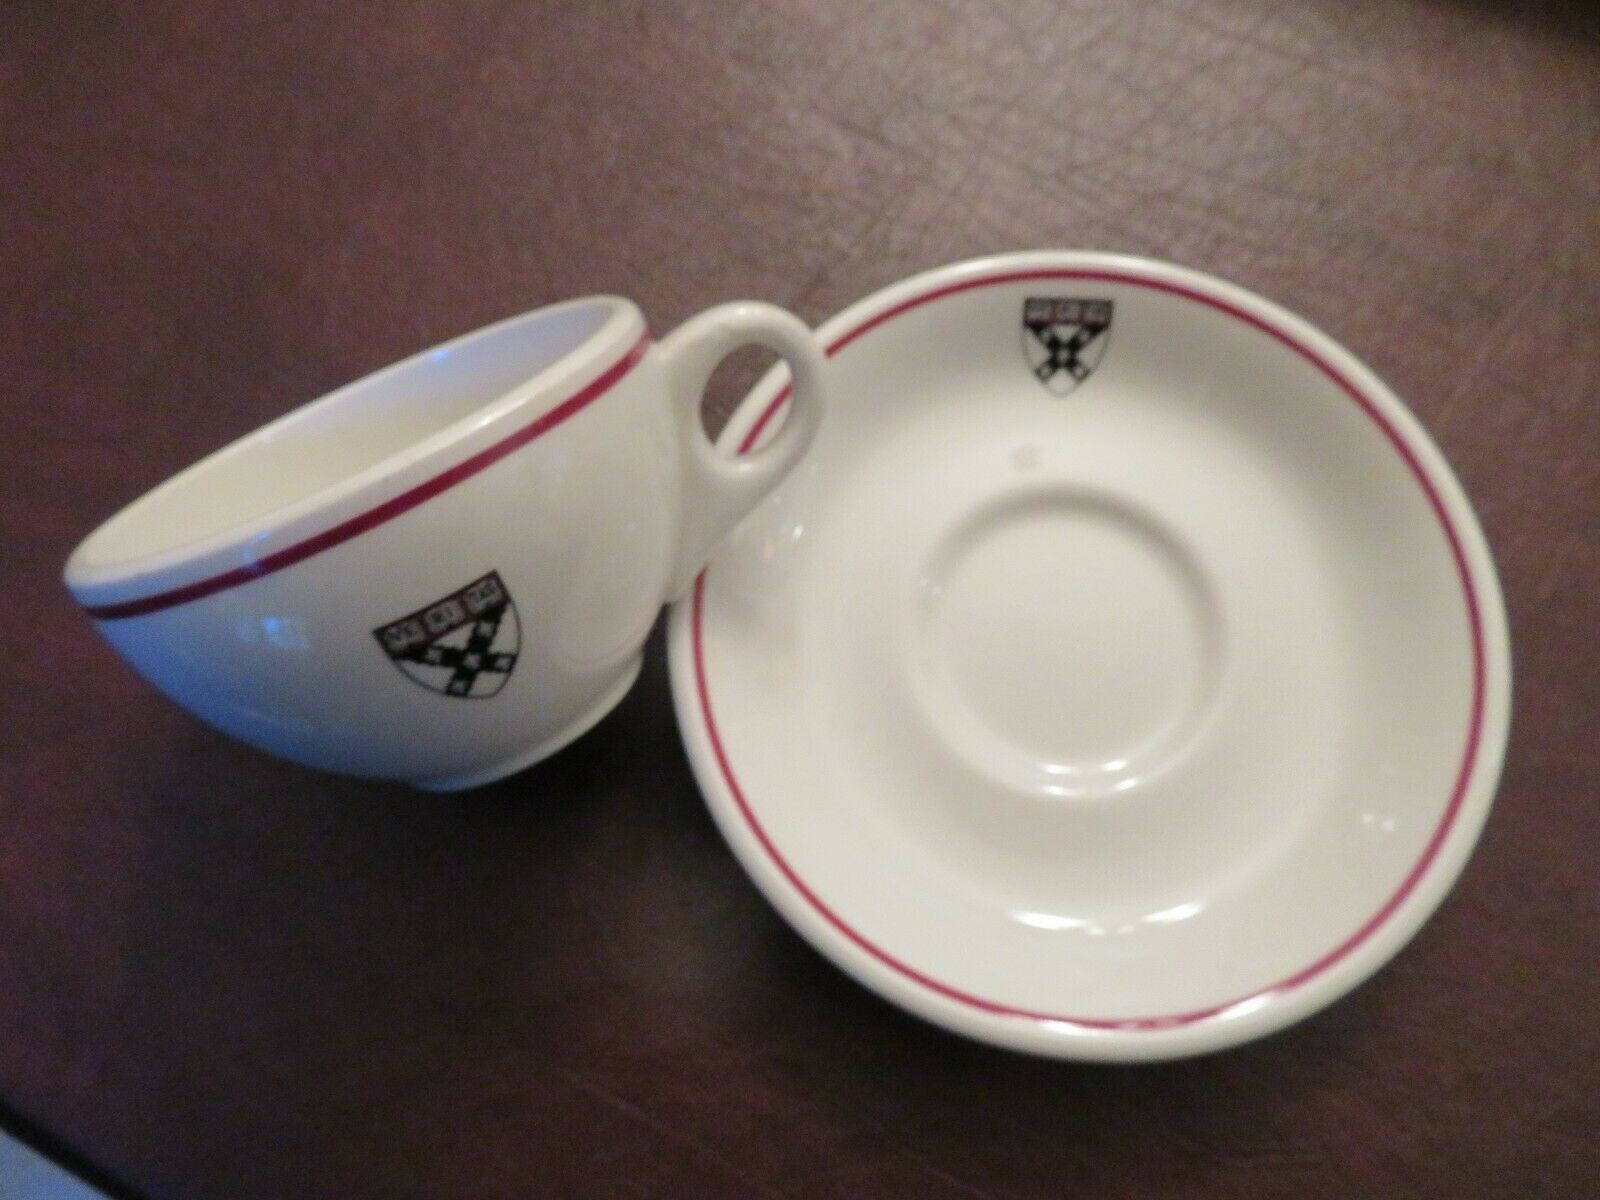 1970s HARVARD BUSINESS SCHOOL Lunchroom/Cafeteria CUP & SAUCER 1